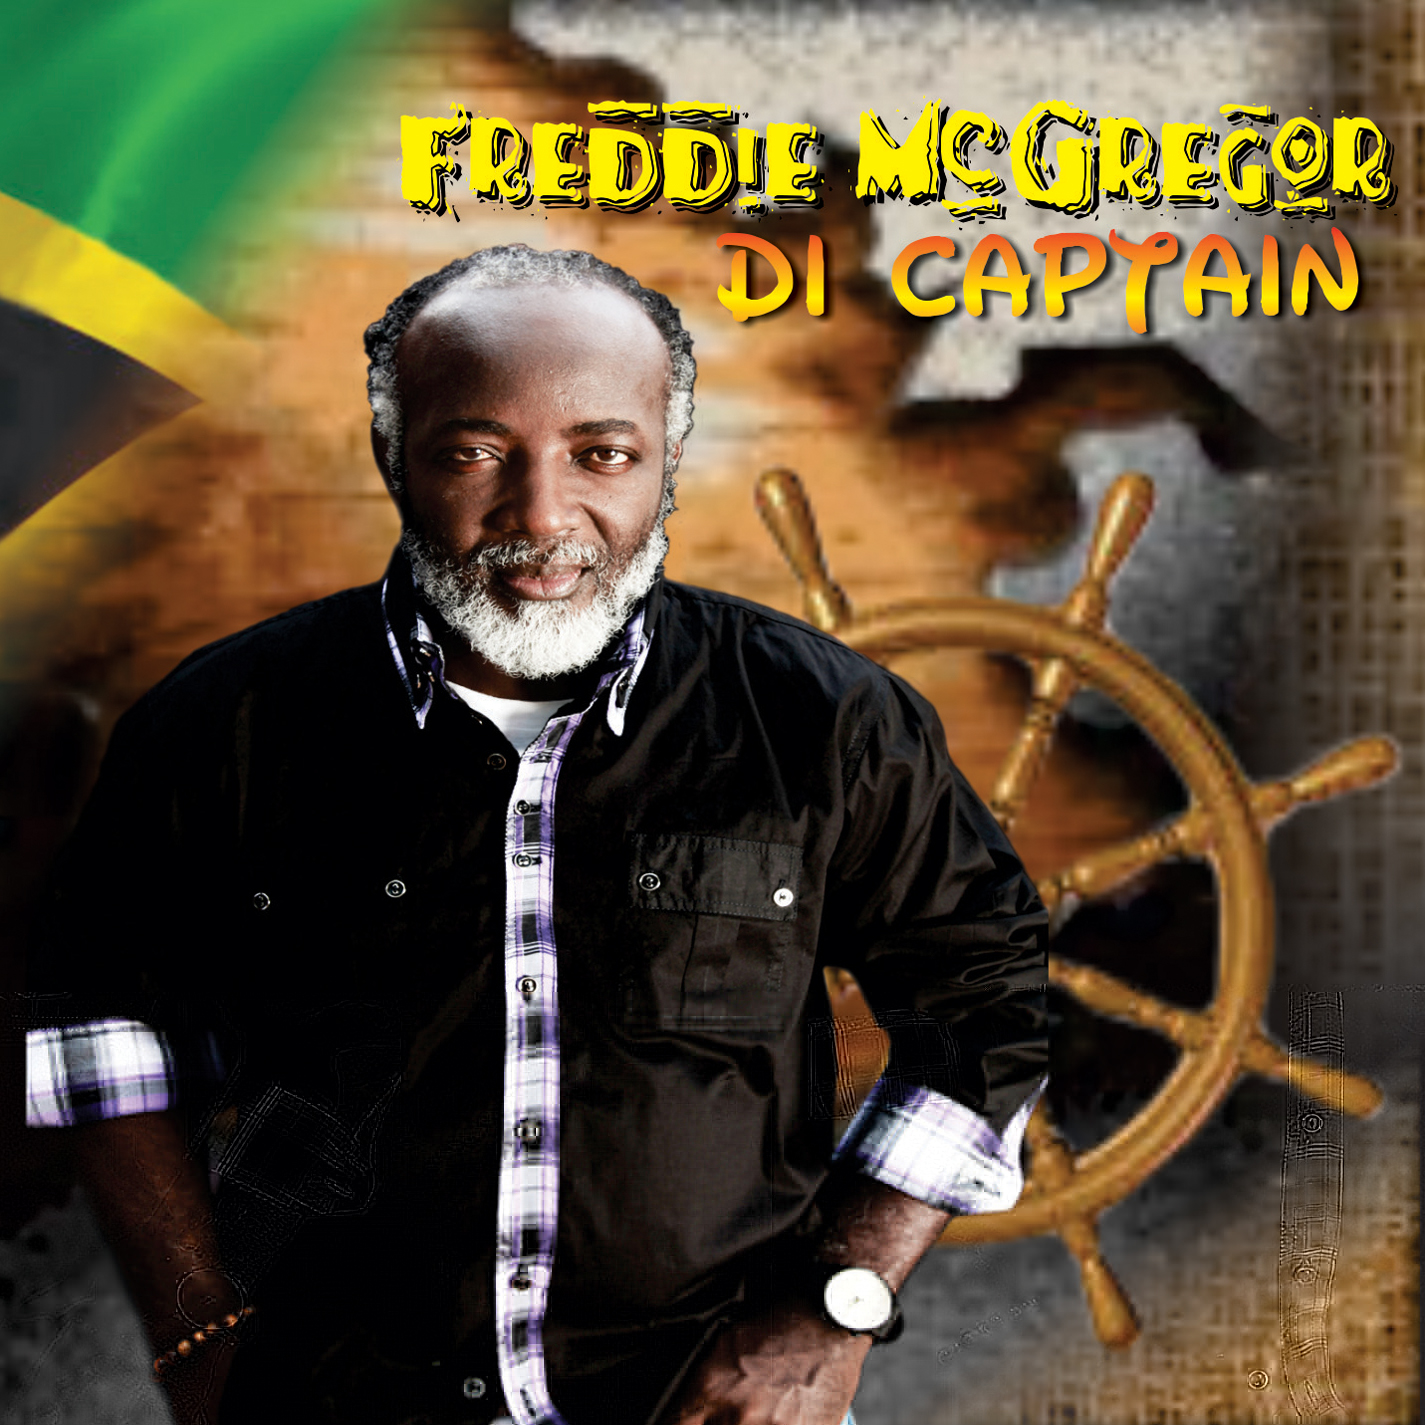 Freddie McGregor 'Di Captain' Album Releases Jan 29